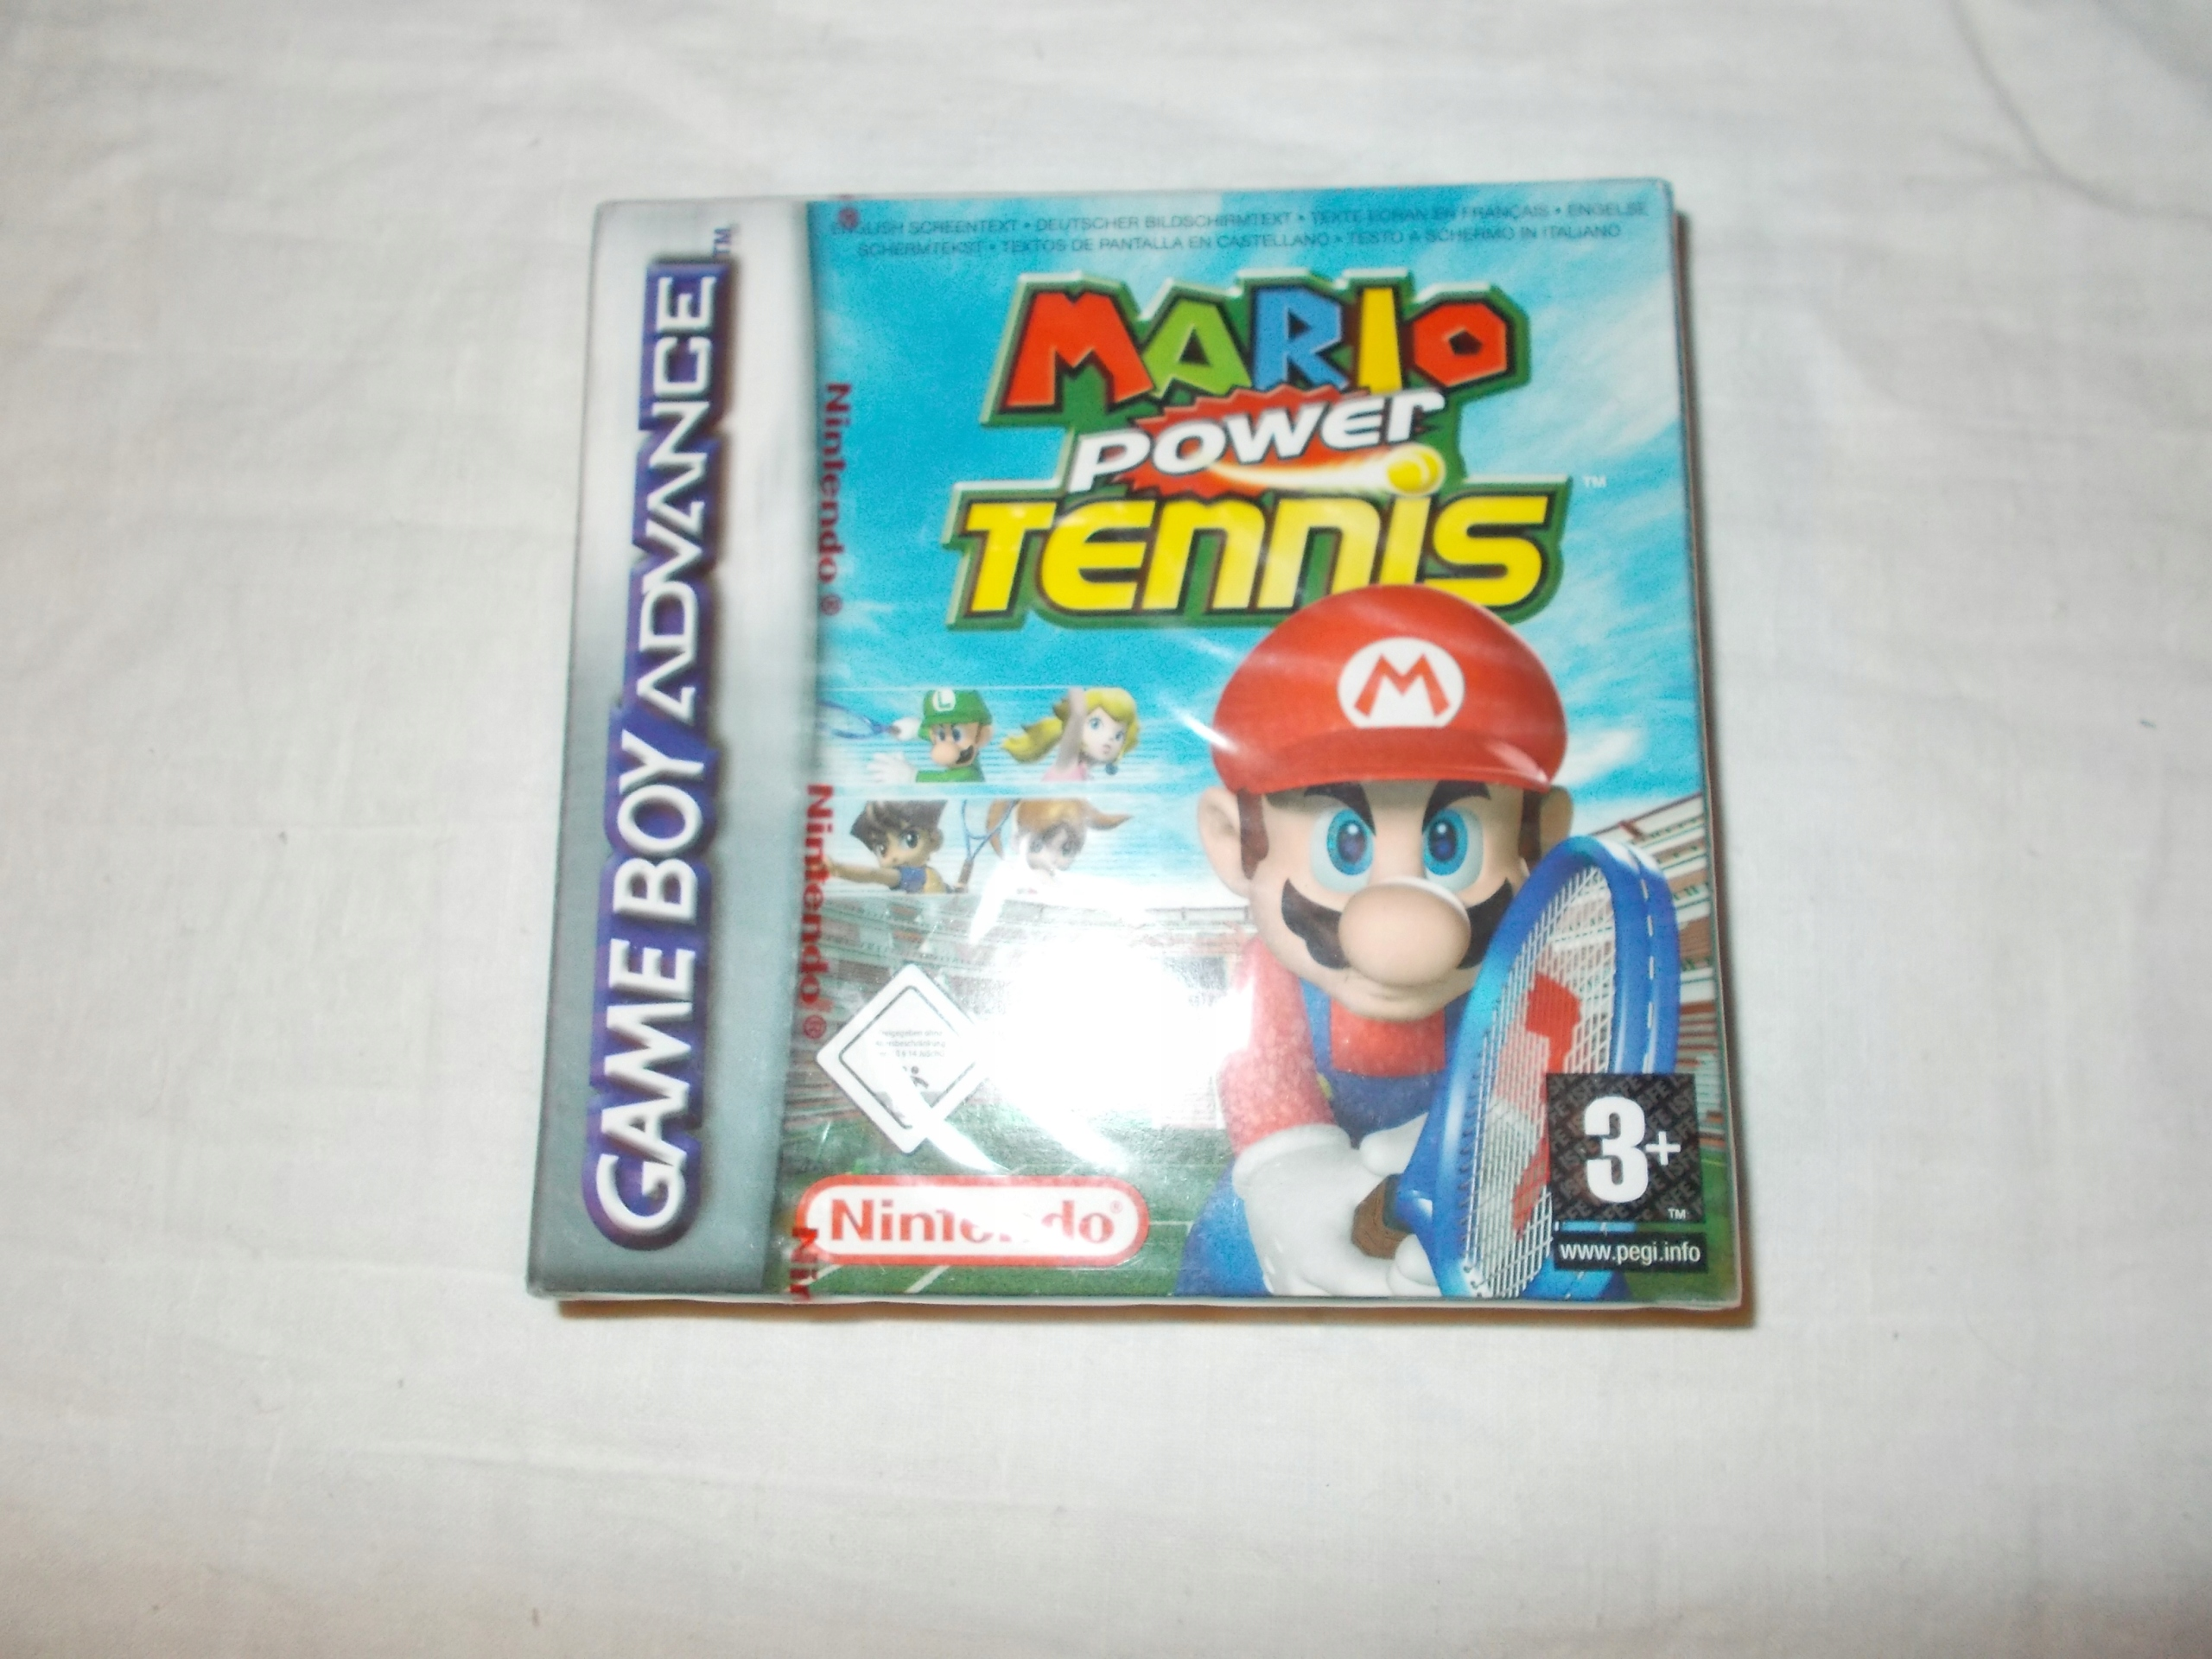 GBA gameboy advance Mario power tennis film